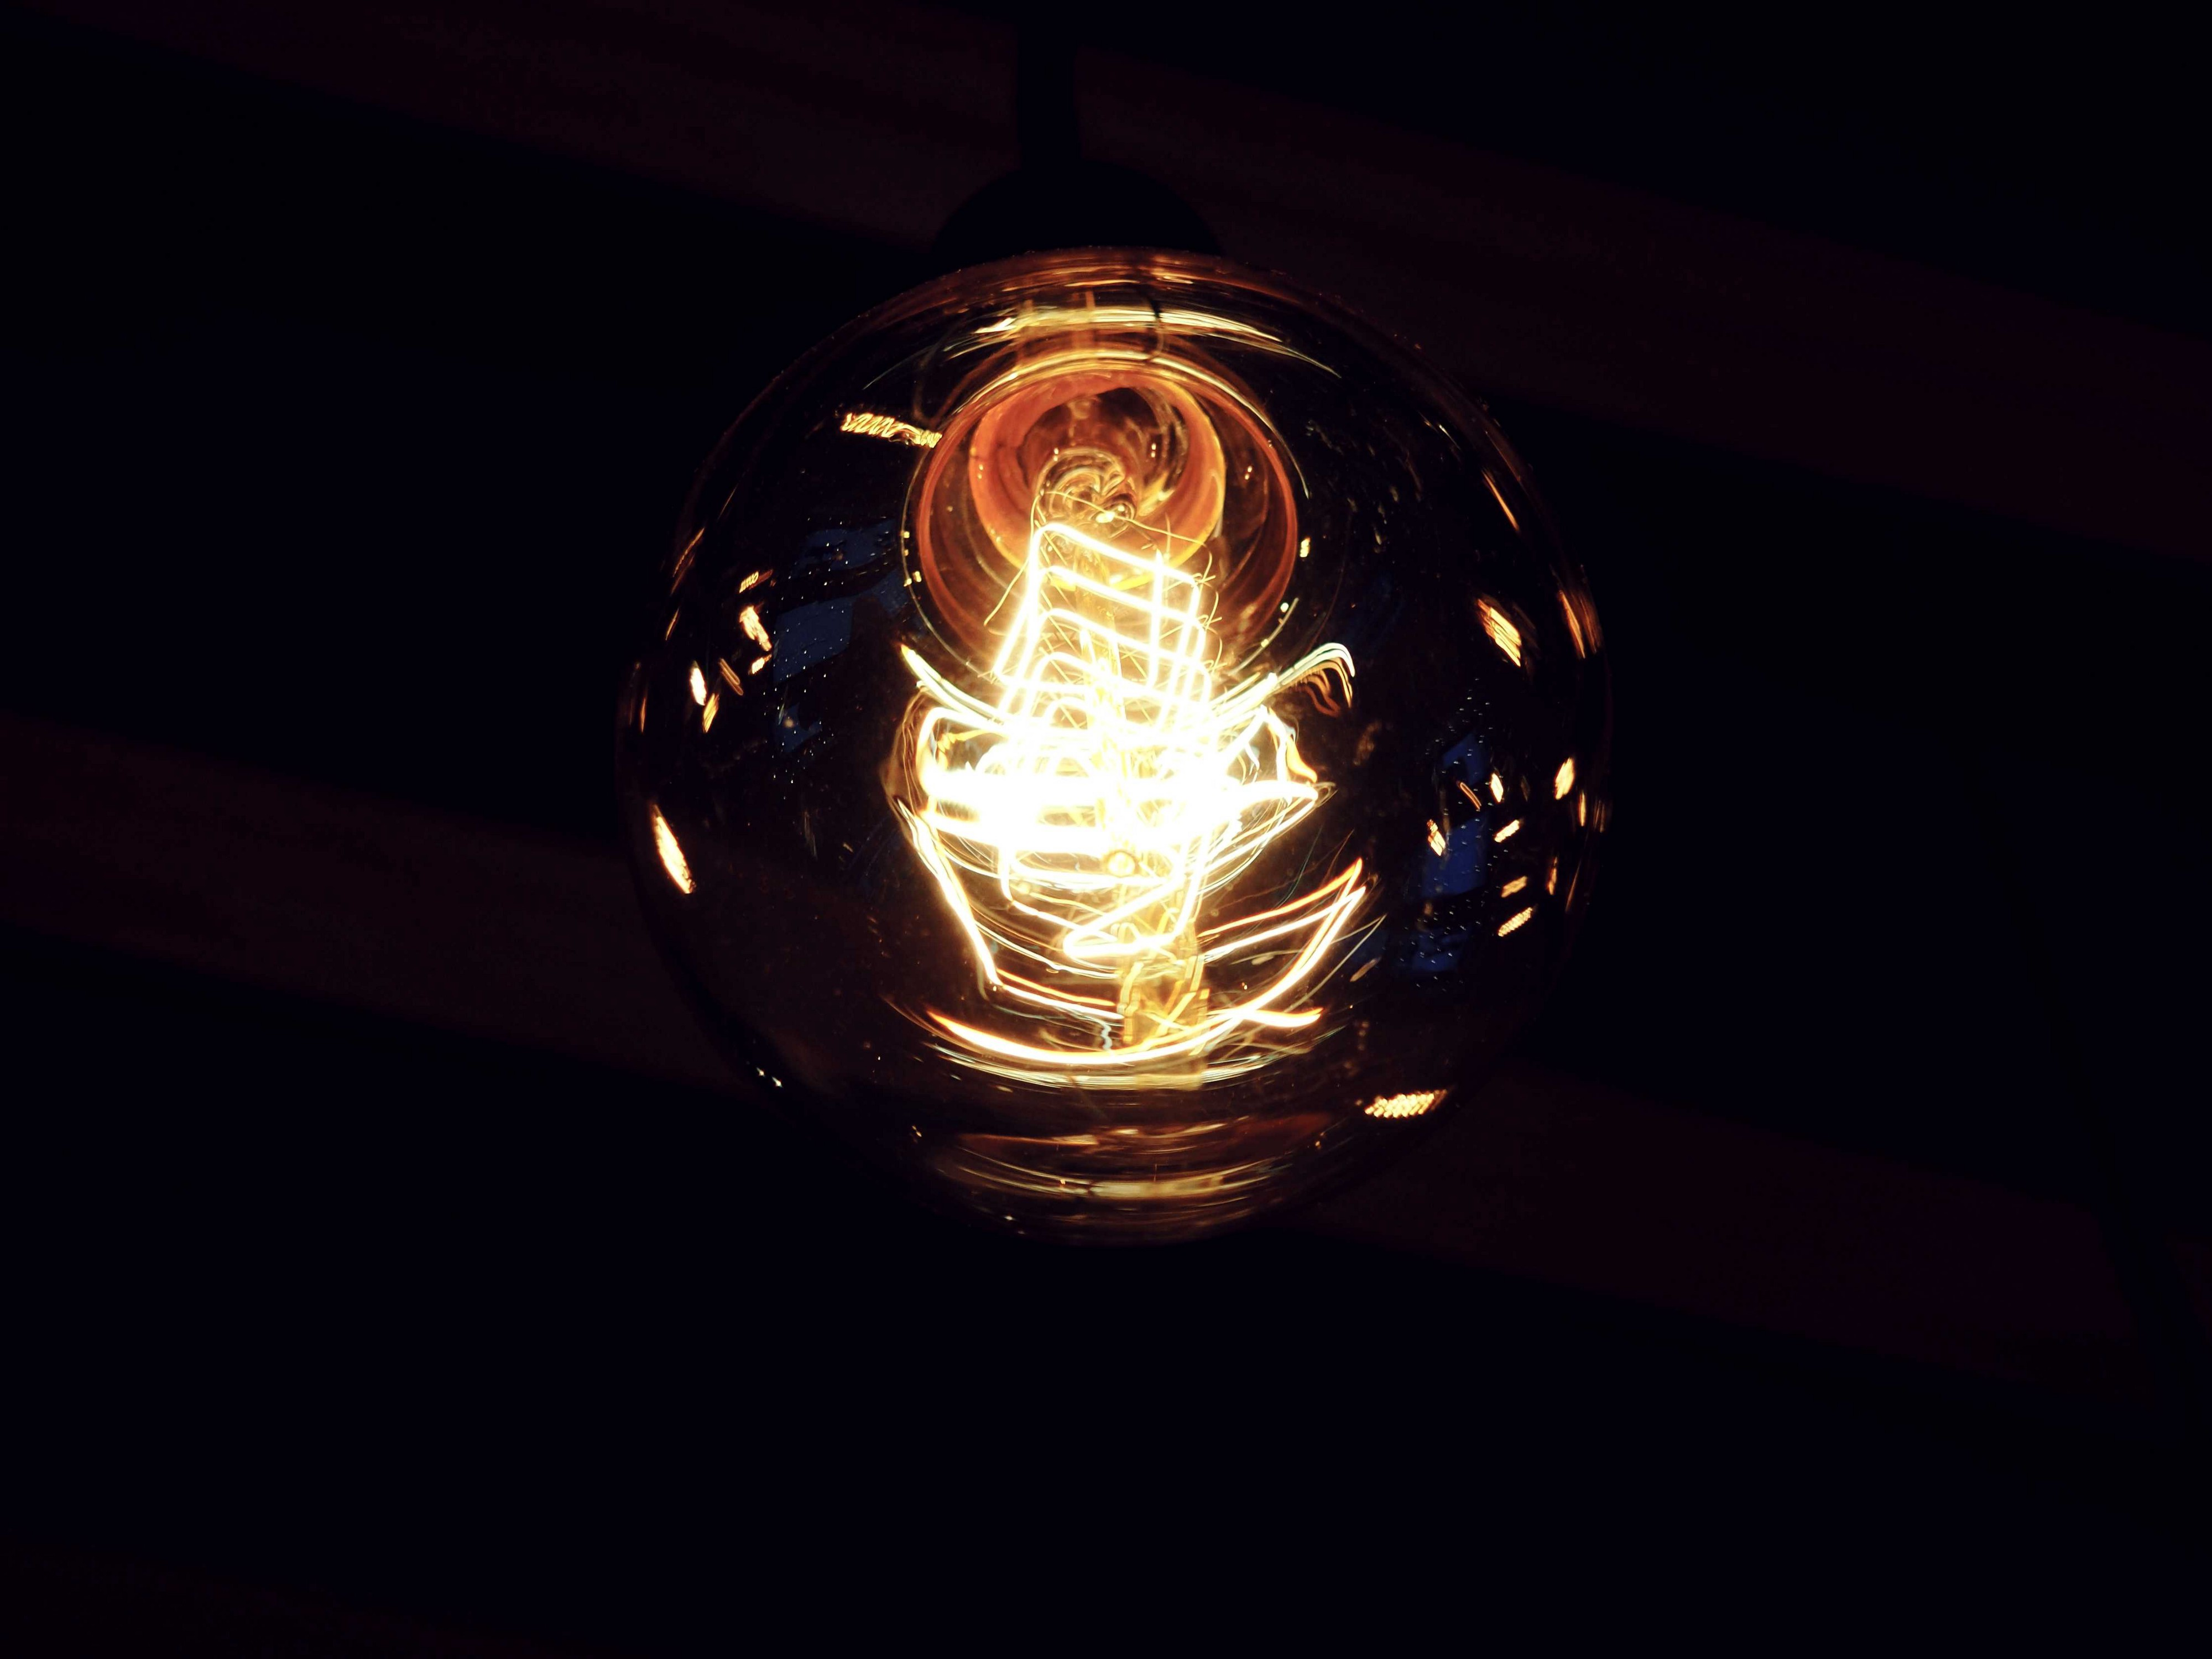 A light bulb filled with dancing energy.